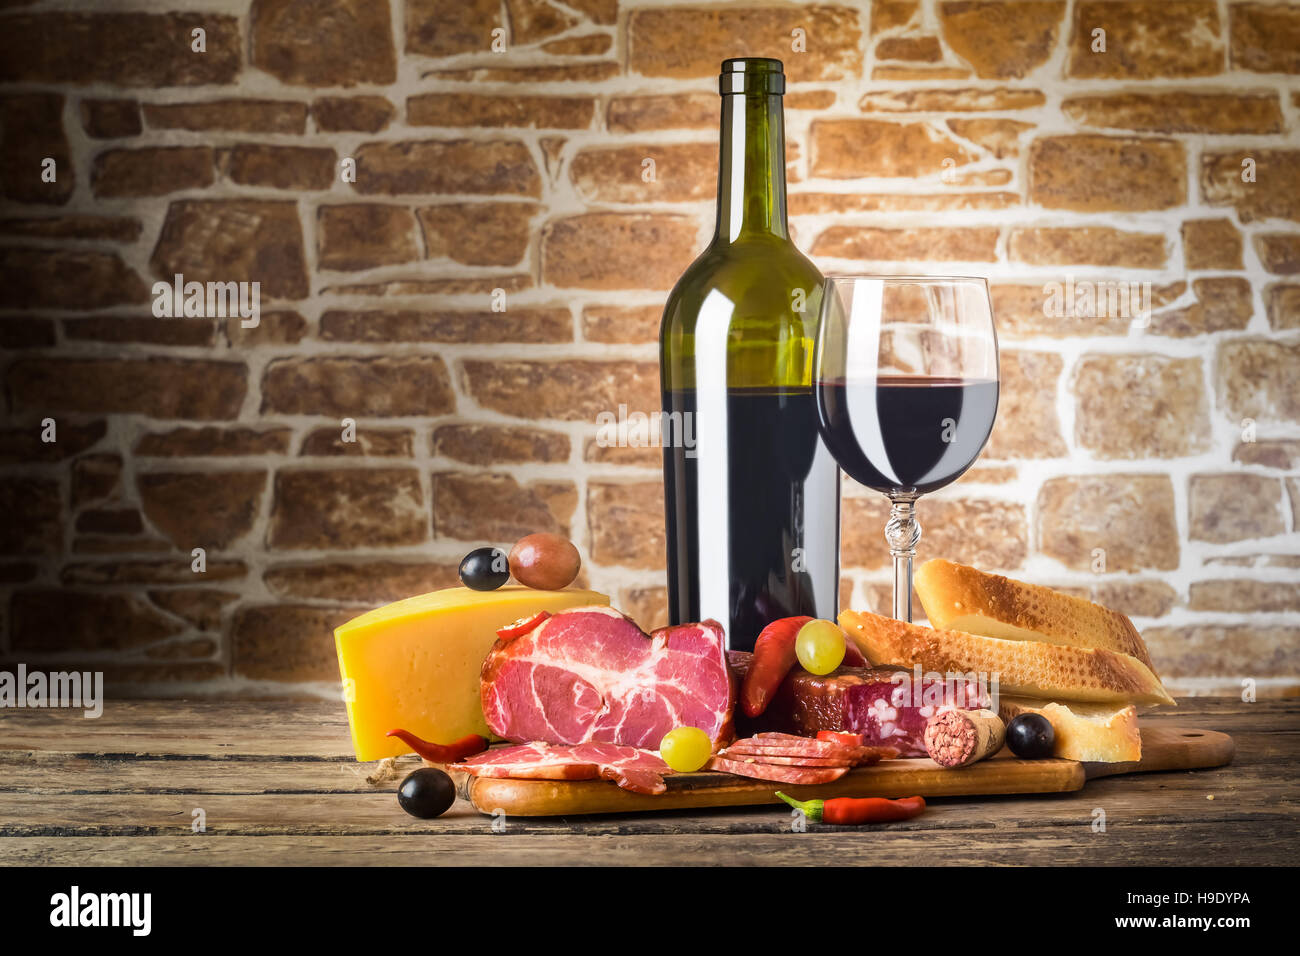 Wine Cheese And Meat On A Wooden Rustic Table Food Background